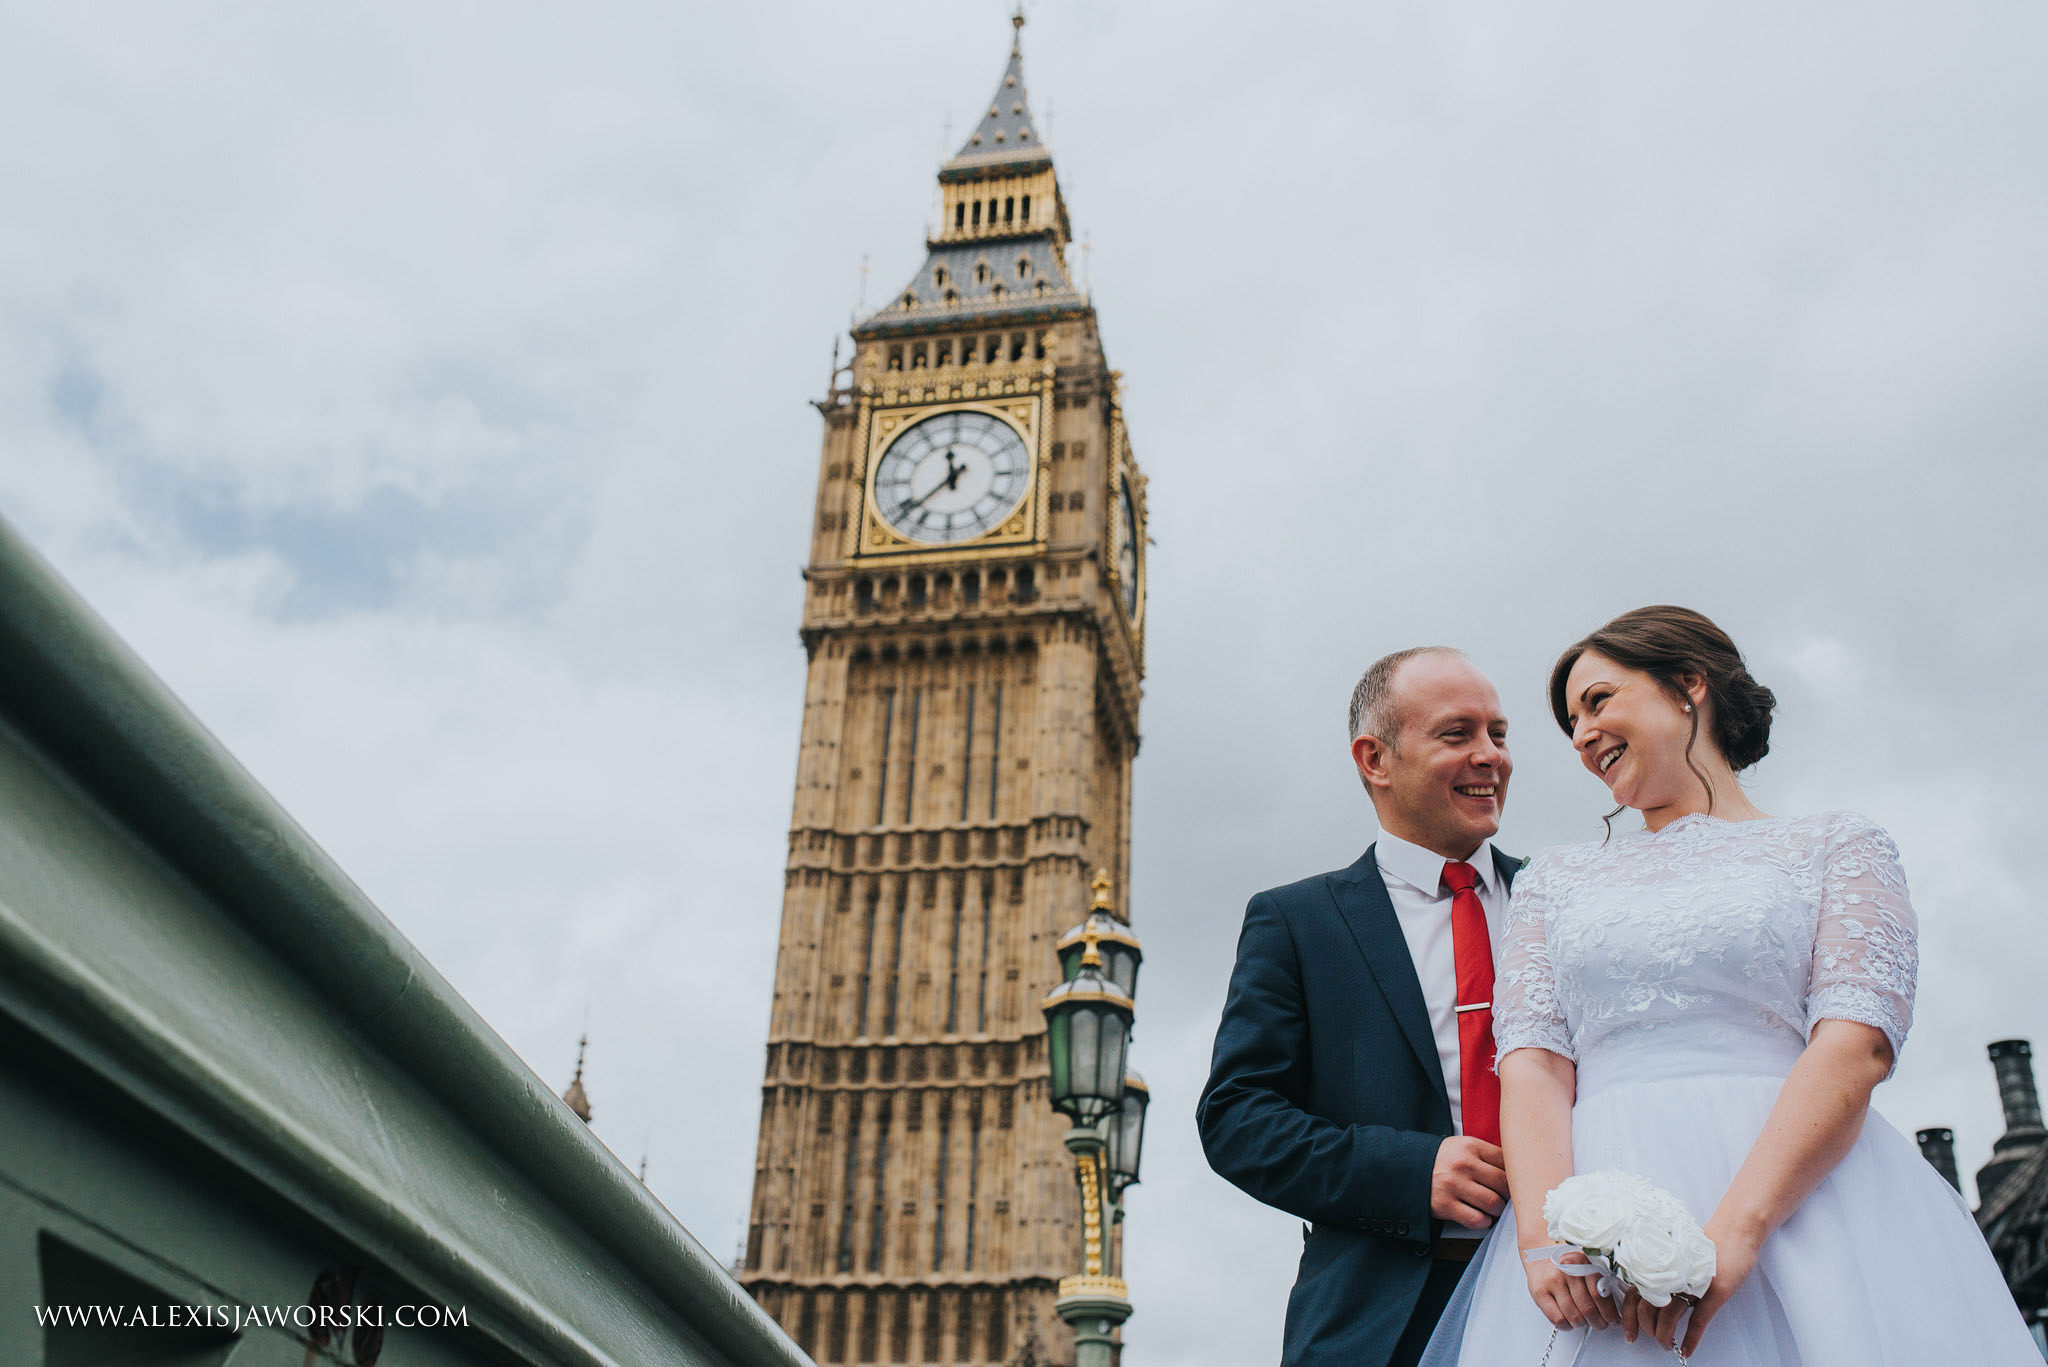 London wedding portrait by Big Ben